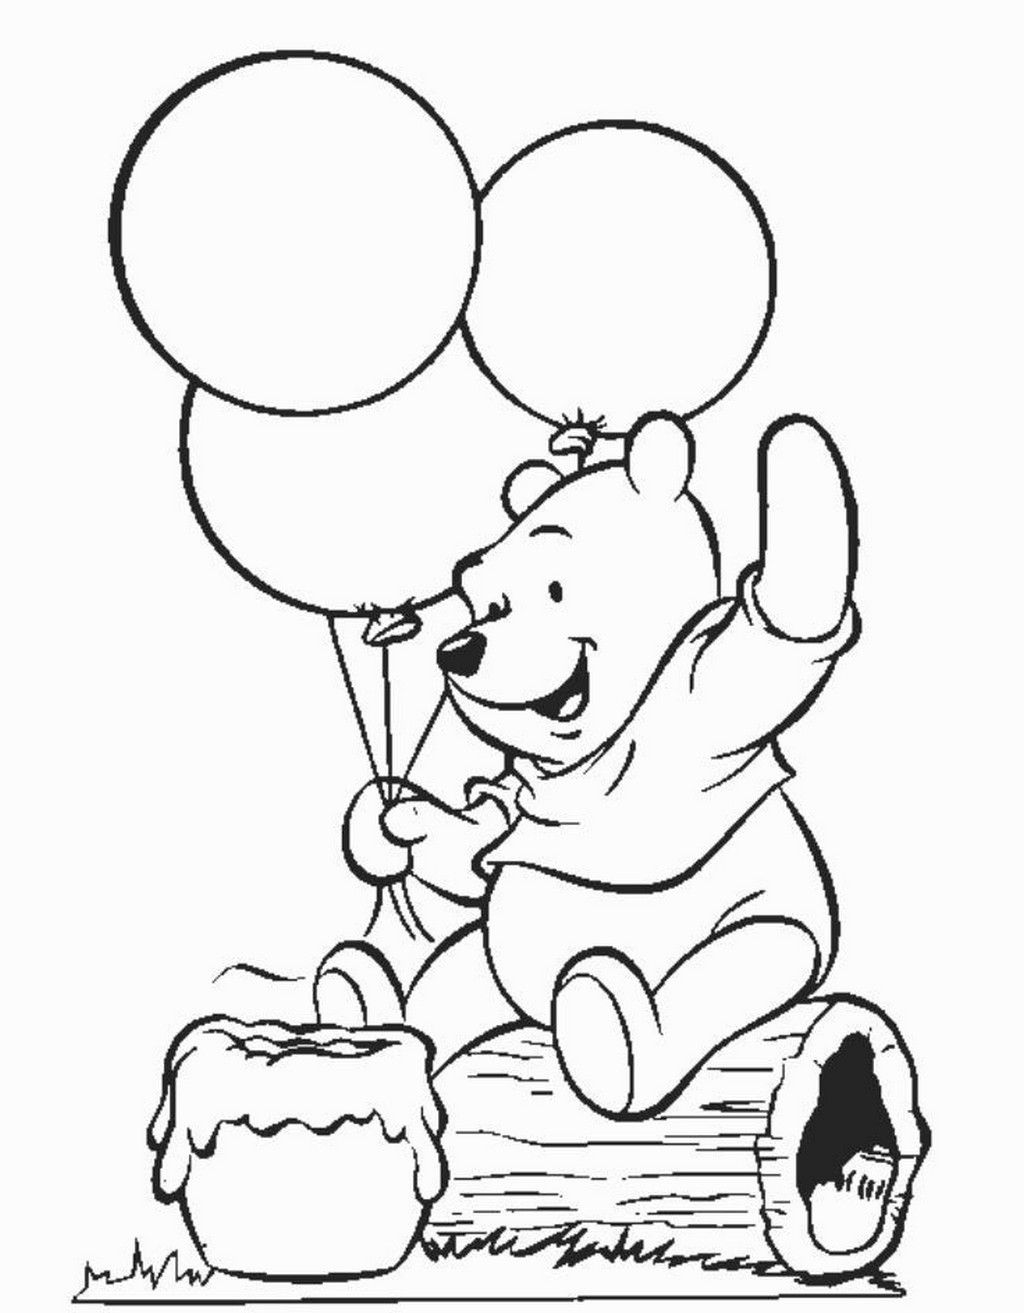 happy birthday pooh bear coloring pages | Winnie The Pooh Happy Birthday Coloring Pages | Bear ...